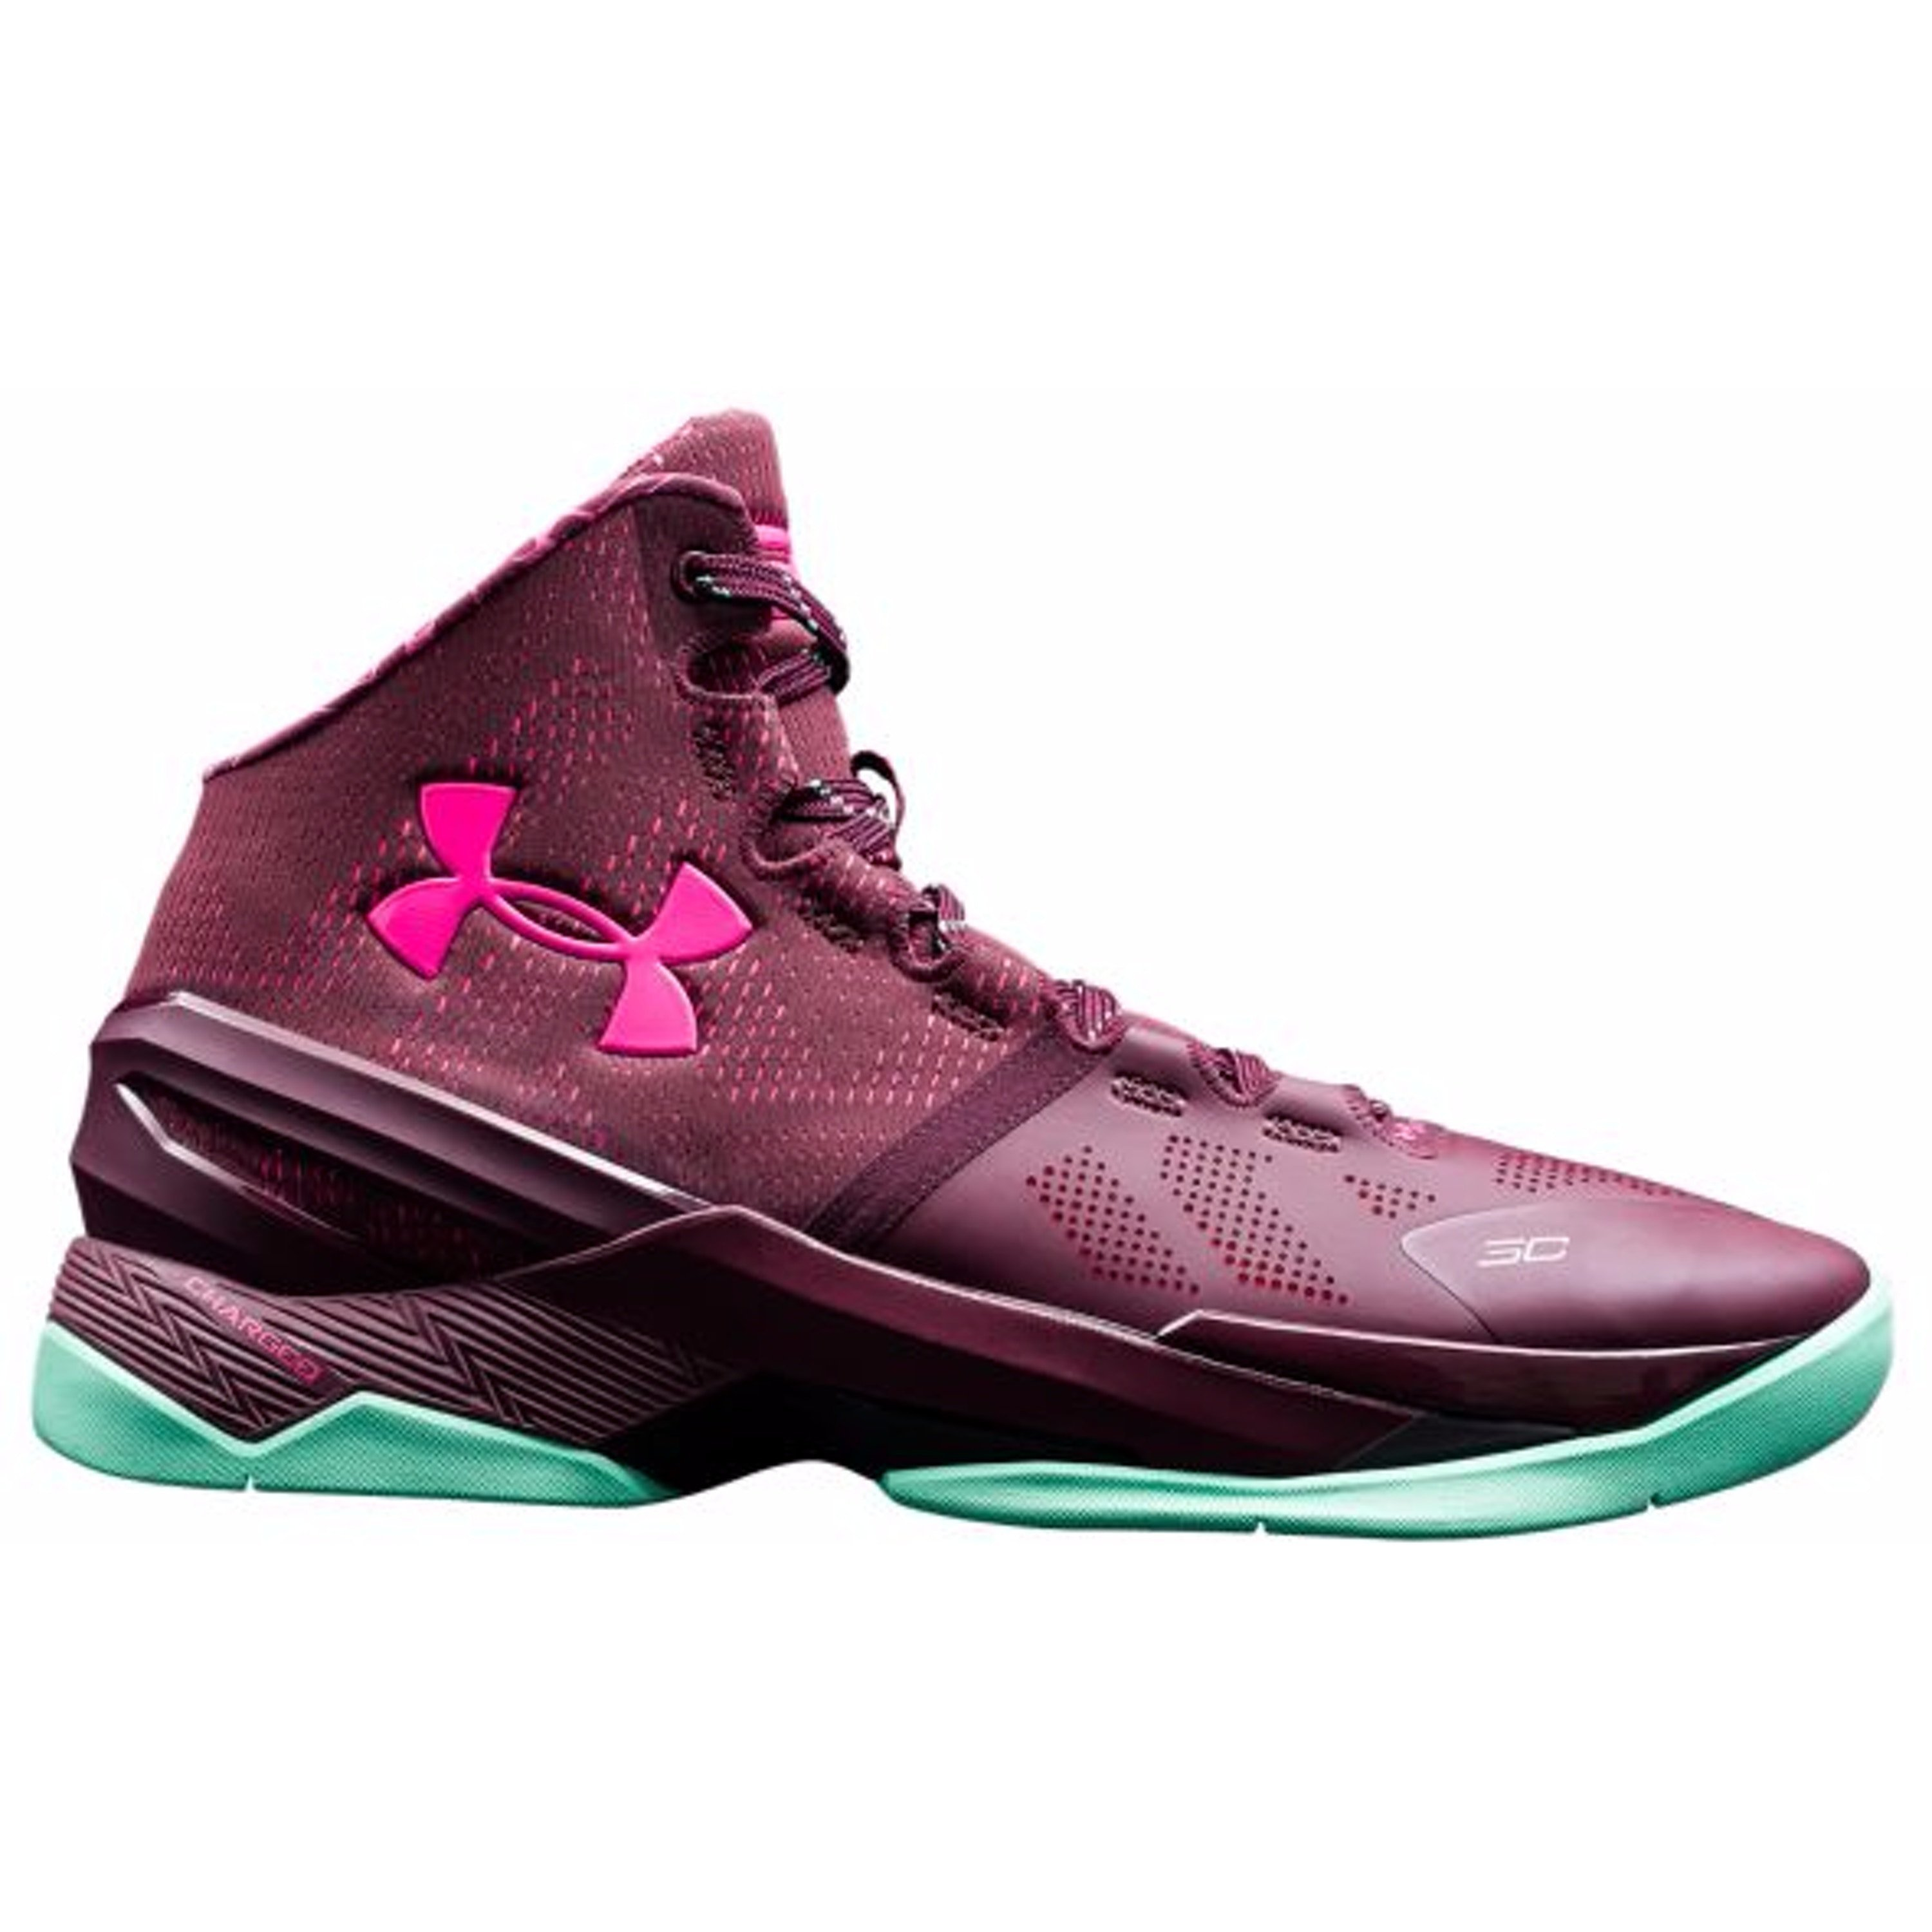 Under Armour UA Curry 2 Black History Month (1259007-602)